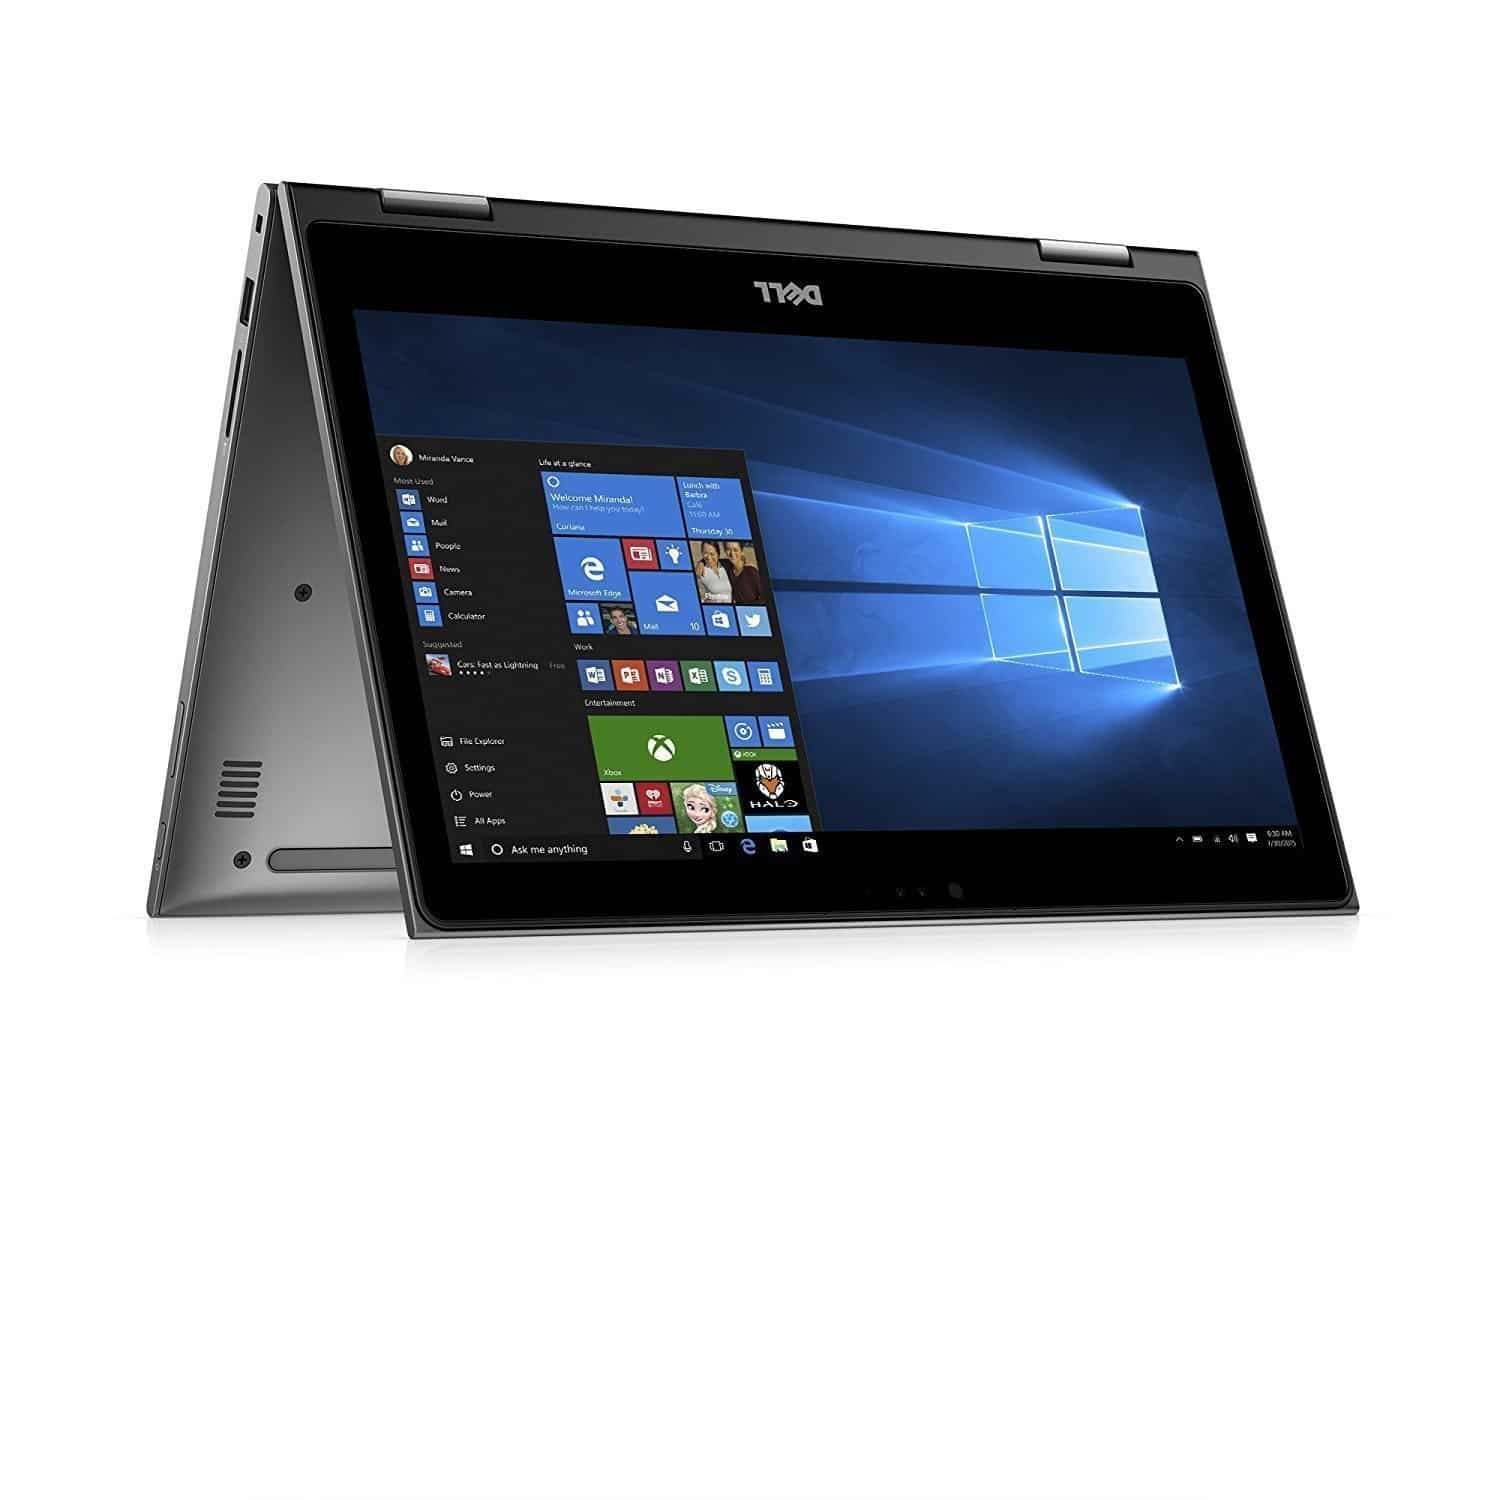 "Dell Inspiron"" width ="" 1500"" height ="" 1500"" srcset ="" https://justcreative.com/wp-content/uploads/2017/12/dell-inspiron.jpg 1500w,https://justcreative.com/wp -content / uploads / 2017/12 / dell-inspiron-300x300.jpg 300w,https://justcreative.com/wp-content/uploads/2017/12/dell-inspiron-100x100.jpg 100w,https:// justcreative .com / wp-content / uploads / 2017/12 / dell-inspiron-600x600.jpg 600w,https://justcreative.com/wp-content/uploads/2017/12/dell-inspiron-150x150.jpg 150w,https ://justcreative.com/wp-content/uploads/2017/12/dell-inspiron-400x400.jpg 400w,https://justcreative.com/wp-content/uploads/2017/12/dell-inspiron-768x768。 jpg jpg 768w,https://justcreative.com/wp-content/uploads/2017/12/dell-inspiron-1024x1024.jpg 1024w,https://justcreative.com/wp-content/uploads/2017/12/dell- inspiron-80x80.jpg 80w,https://justcreative.com/wp-content/uploads/2017/12/dell-inspiron-500x500.jpg 500w,https://justcreative.com/wp-content/uploads/2017/ 12 / dell-inspiron-1000x1000.jpg 1000w"" size =""(最大宽度:1500px)100大众1500px"